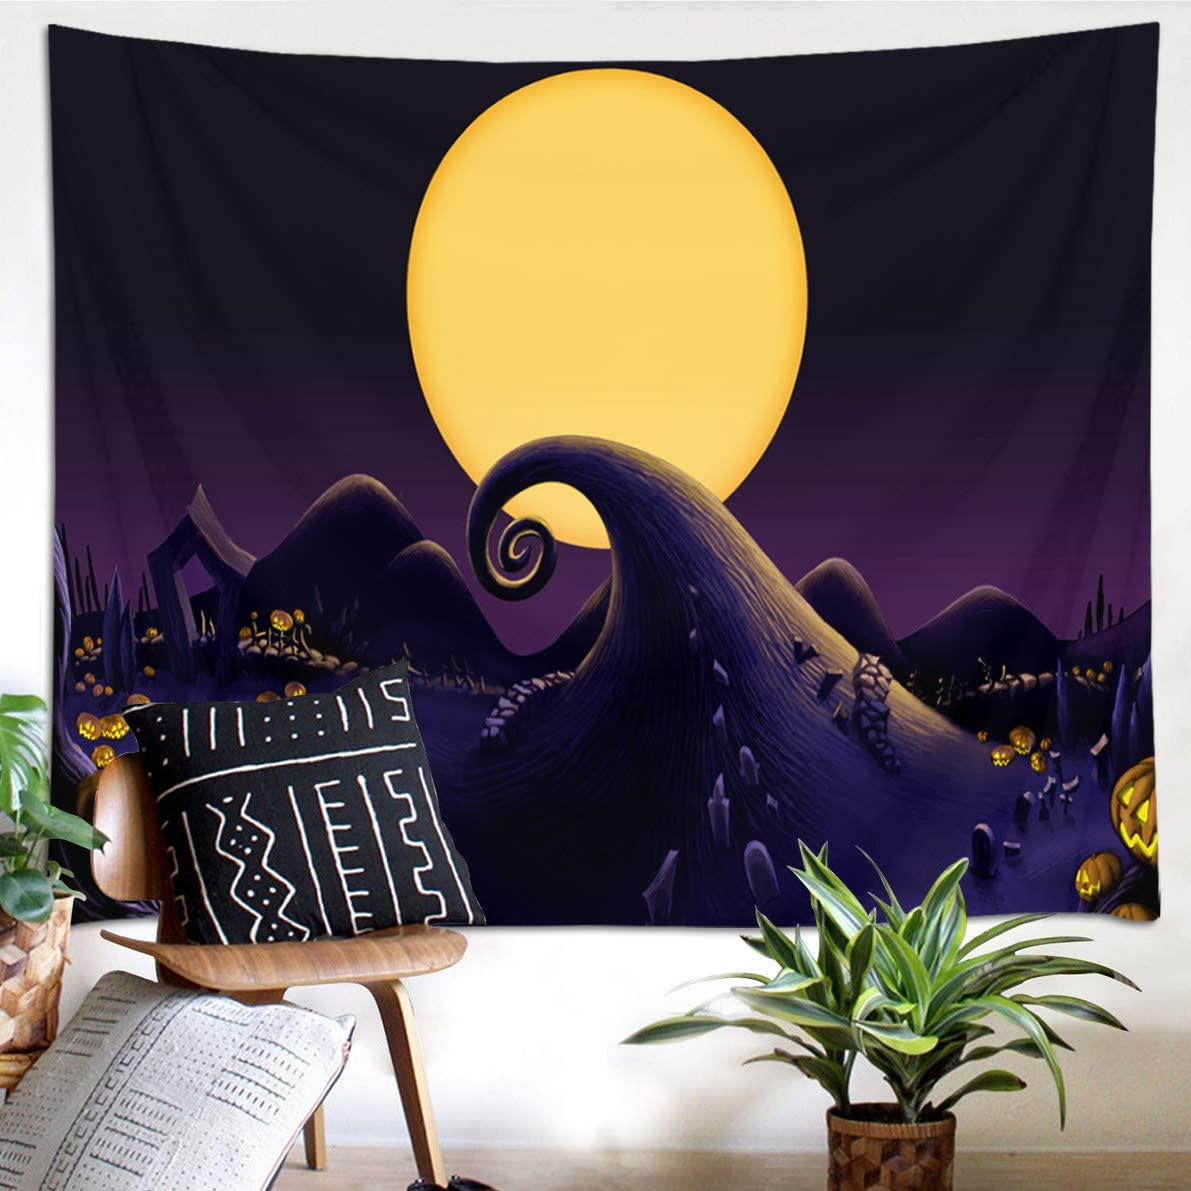 HVEST Nightmare Before Christmas Tapestry Decoration Moon Night Graveyard Wall Decor Pumpkin Jack-O-Lantern Wall Decor Wilderness Tapestries for Bedroom Home Dorm Halloween Decor 92.5Wx70.9H inches